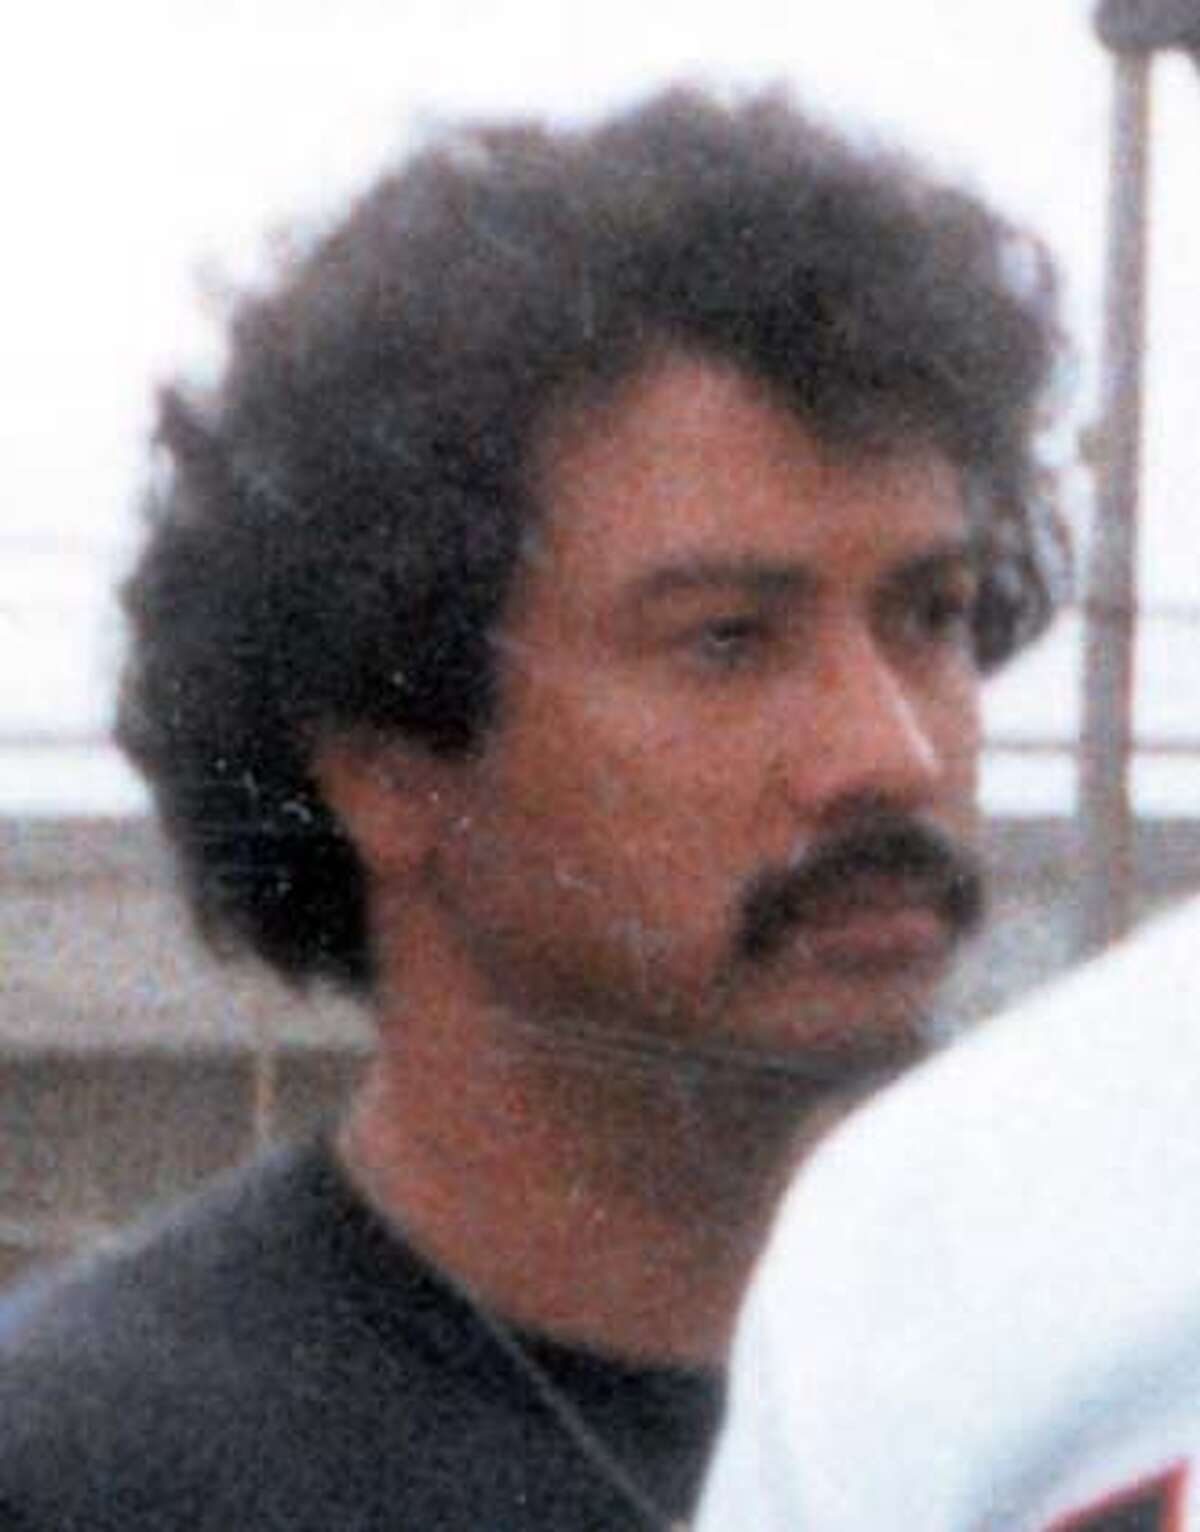 SFPD CHRIS TORRES, 1984 PICTURE. TORRES WAS BEATEN AFTER BEING ARRESTED BY OFFICER JOHN HAGGETT.